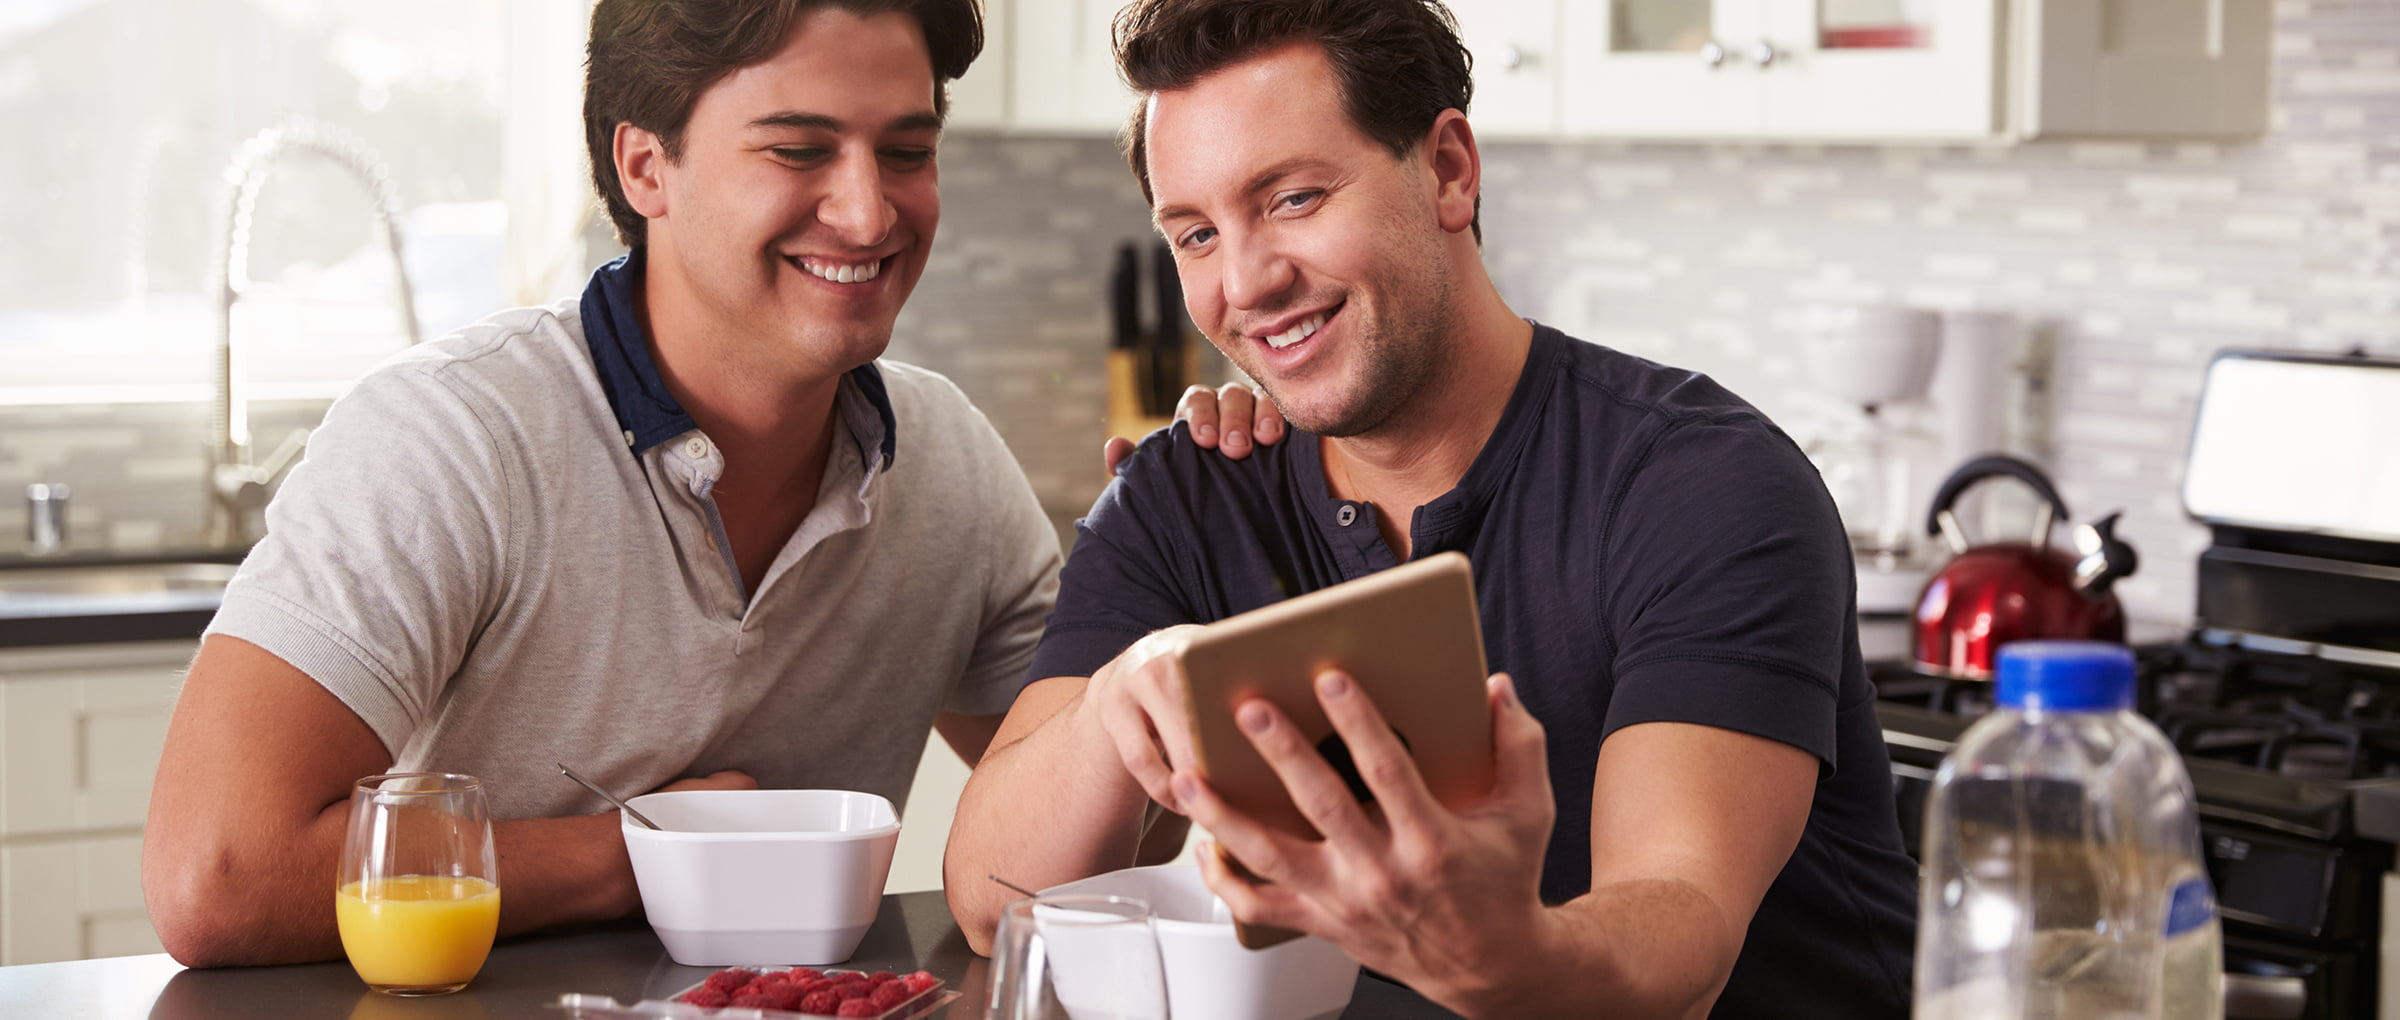 Surrogacy for gay male couples